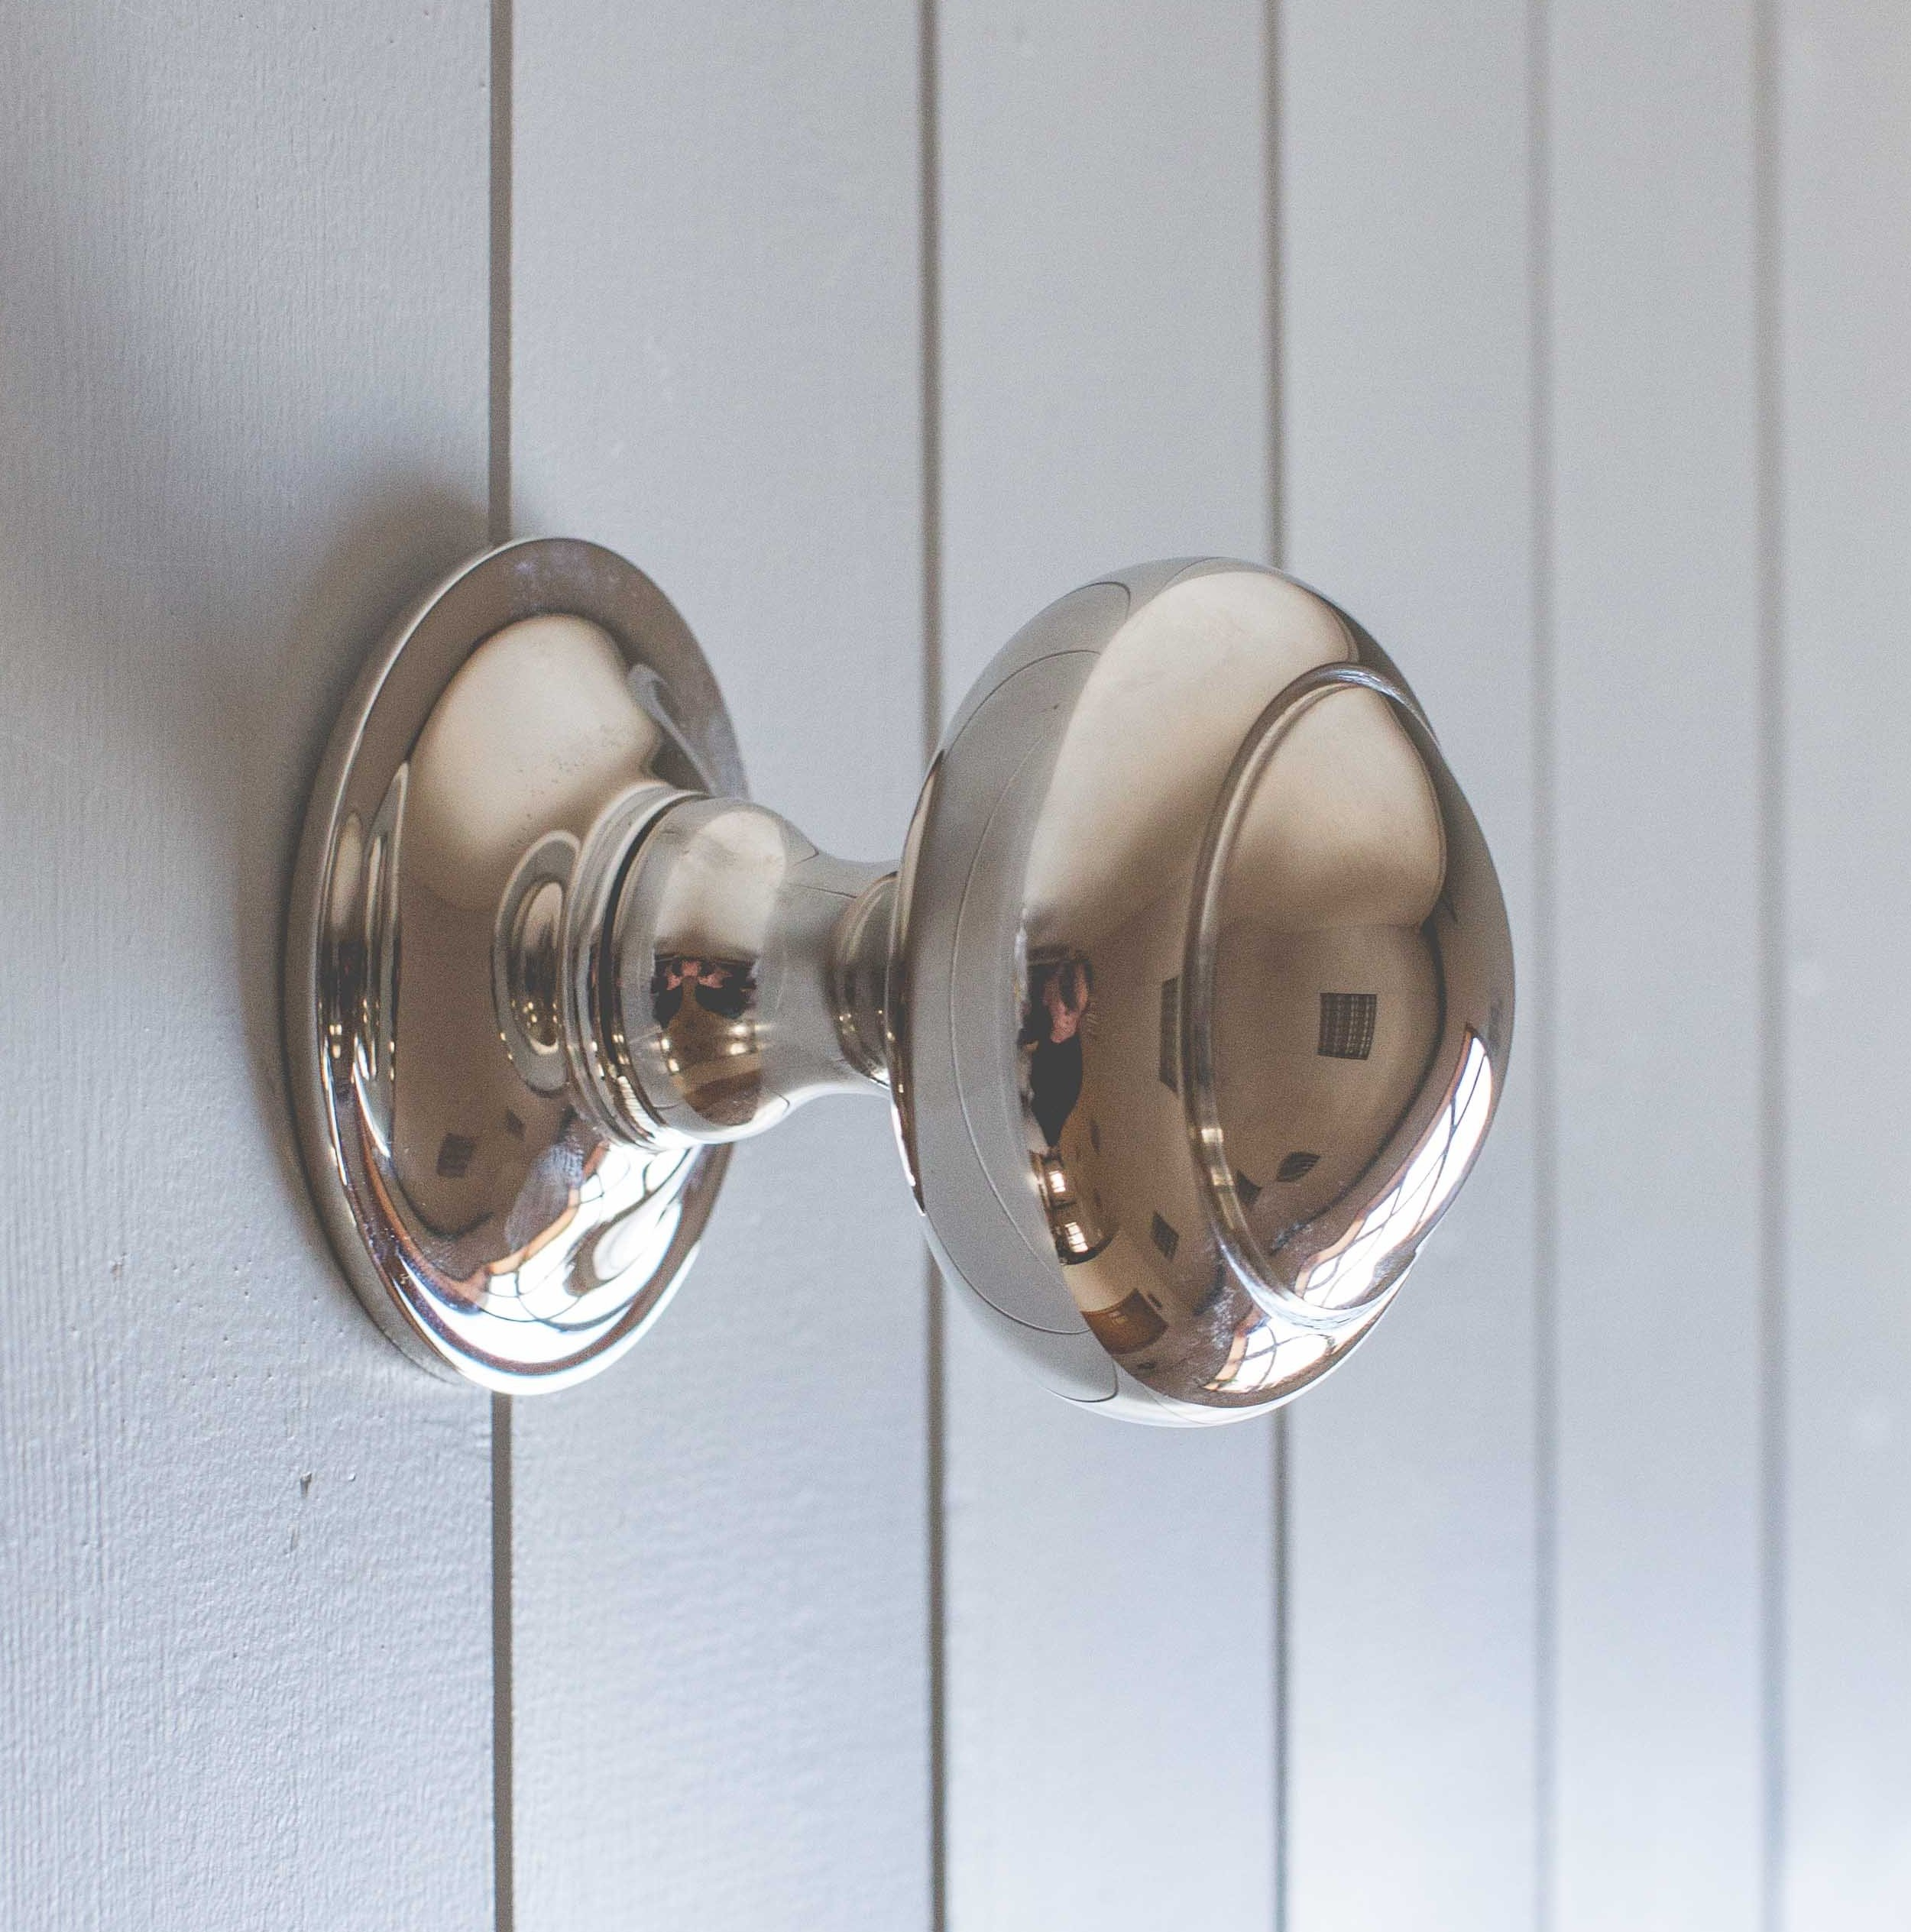 Circular Door Pull - Polished Nickel